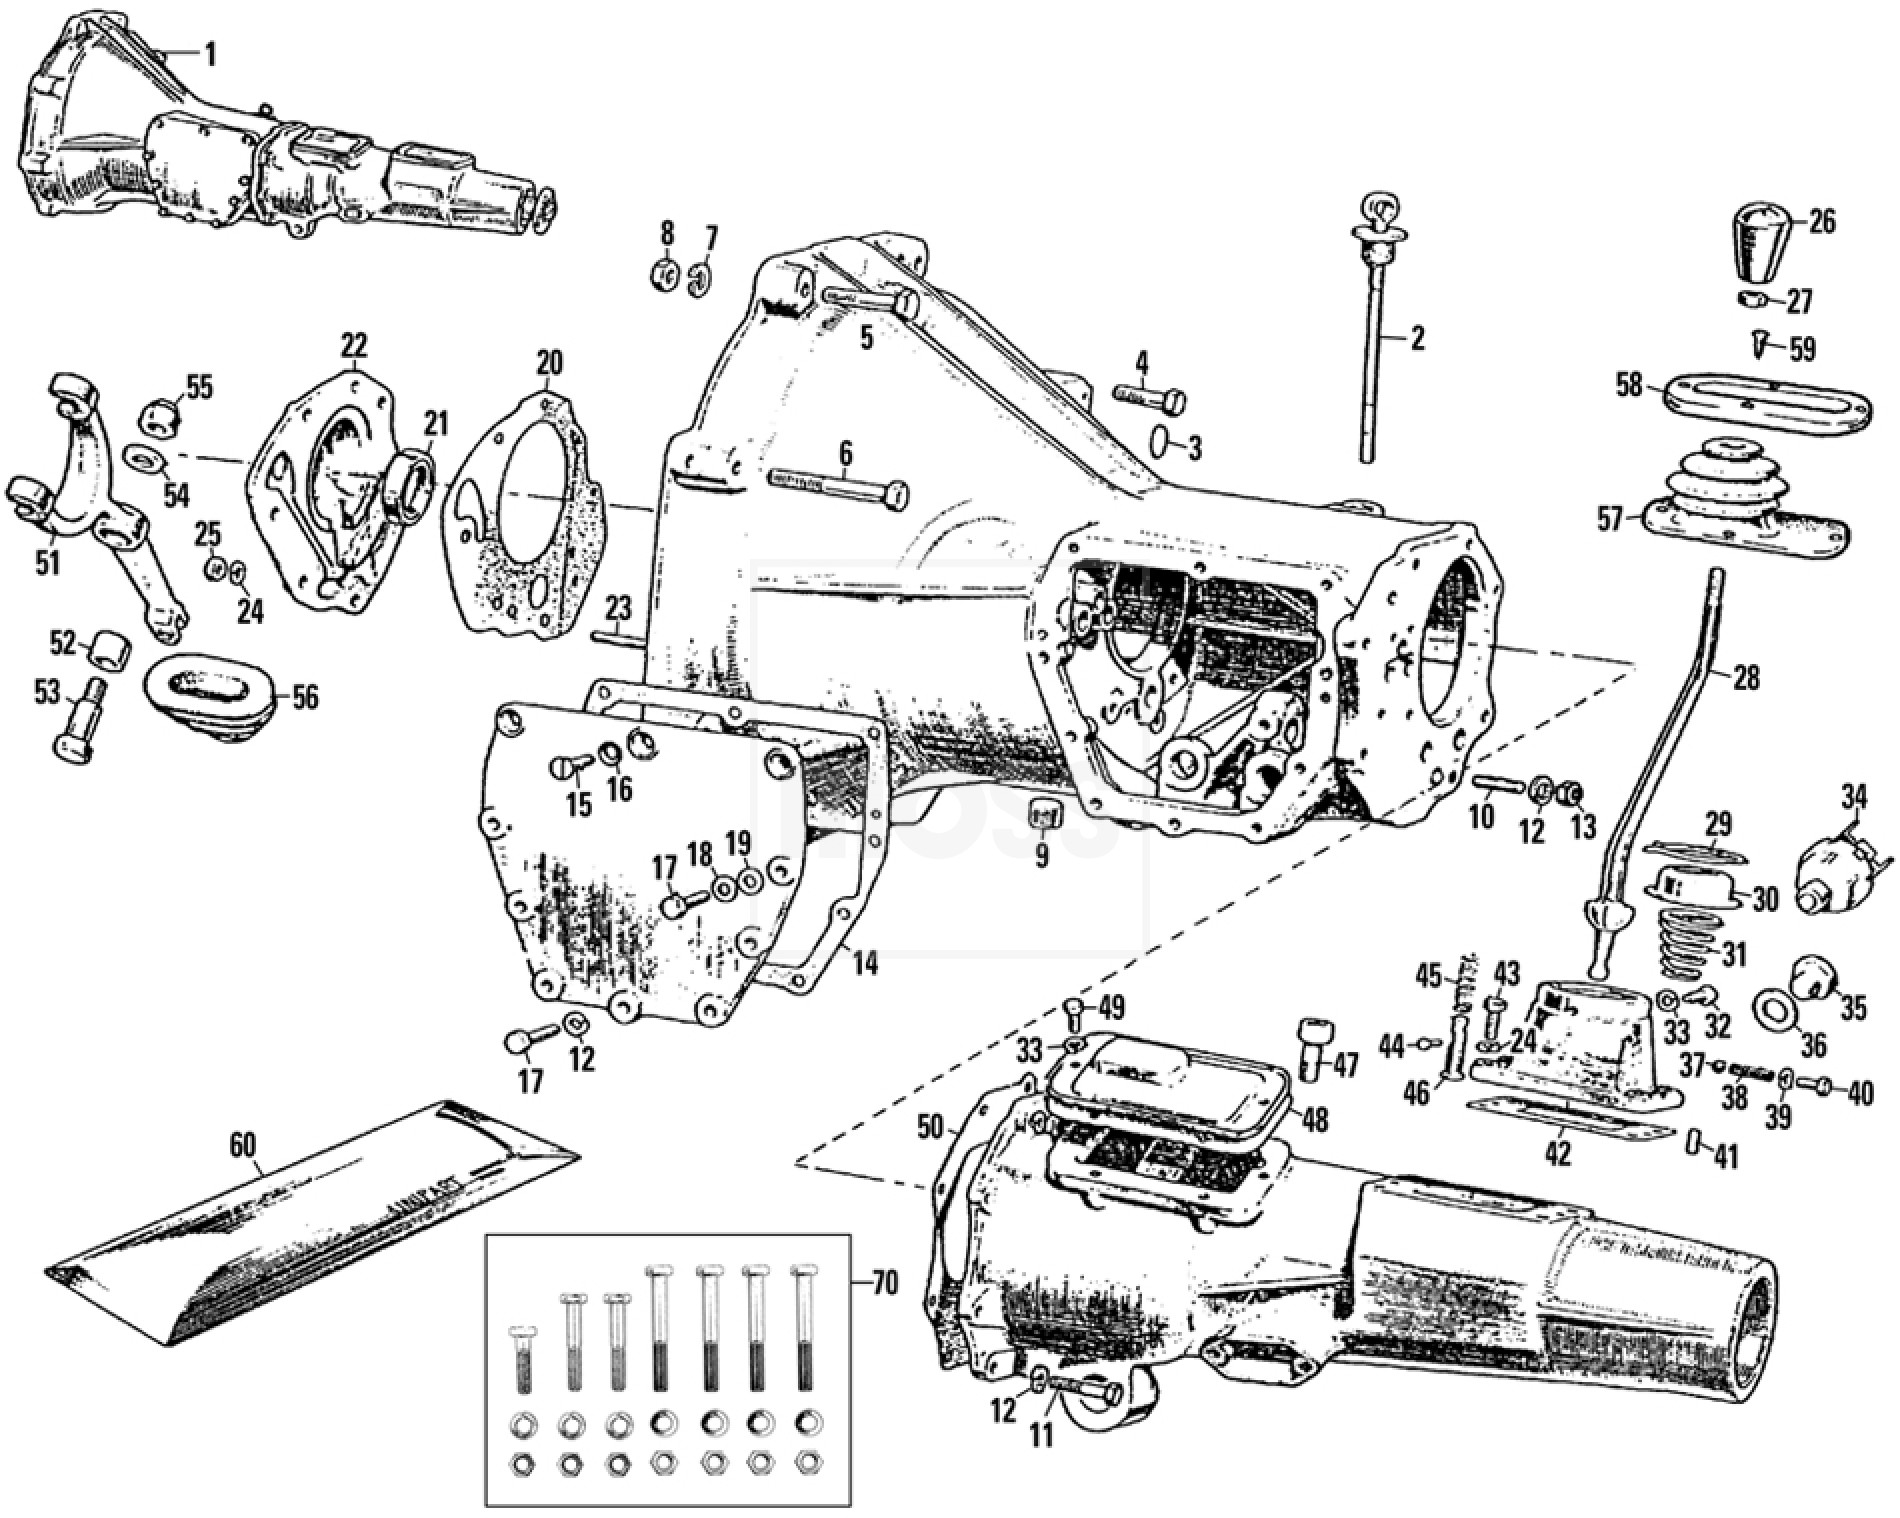 hight resolution of mgb transmission diagram wiring diagram used mgb transmission diagram guide about wiring diagram gearbox vent mgb